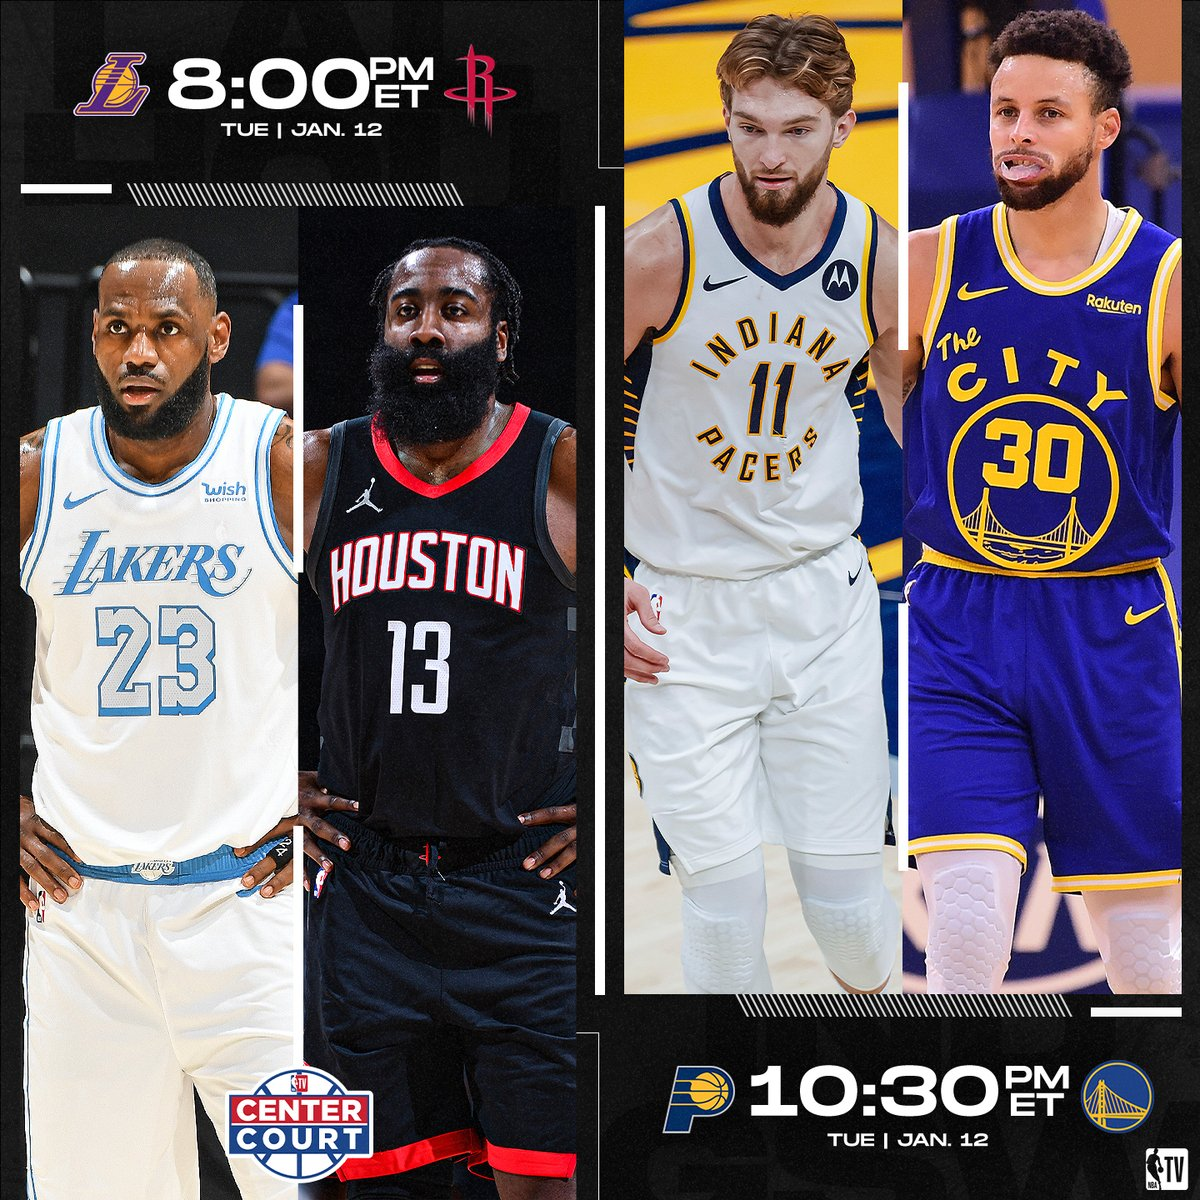 NBA TV has you covered with another #CenterCourt matchup! 🍿  @Lakers vs. @HoustonRockets // 8:00pm ET @Pacers vs. @warriors // 10:30pm ET https://t.co/mBOHRF0EZj